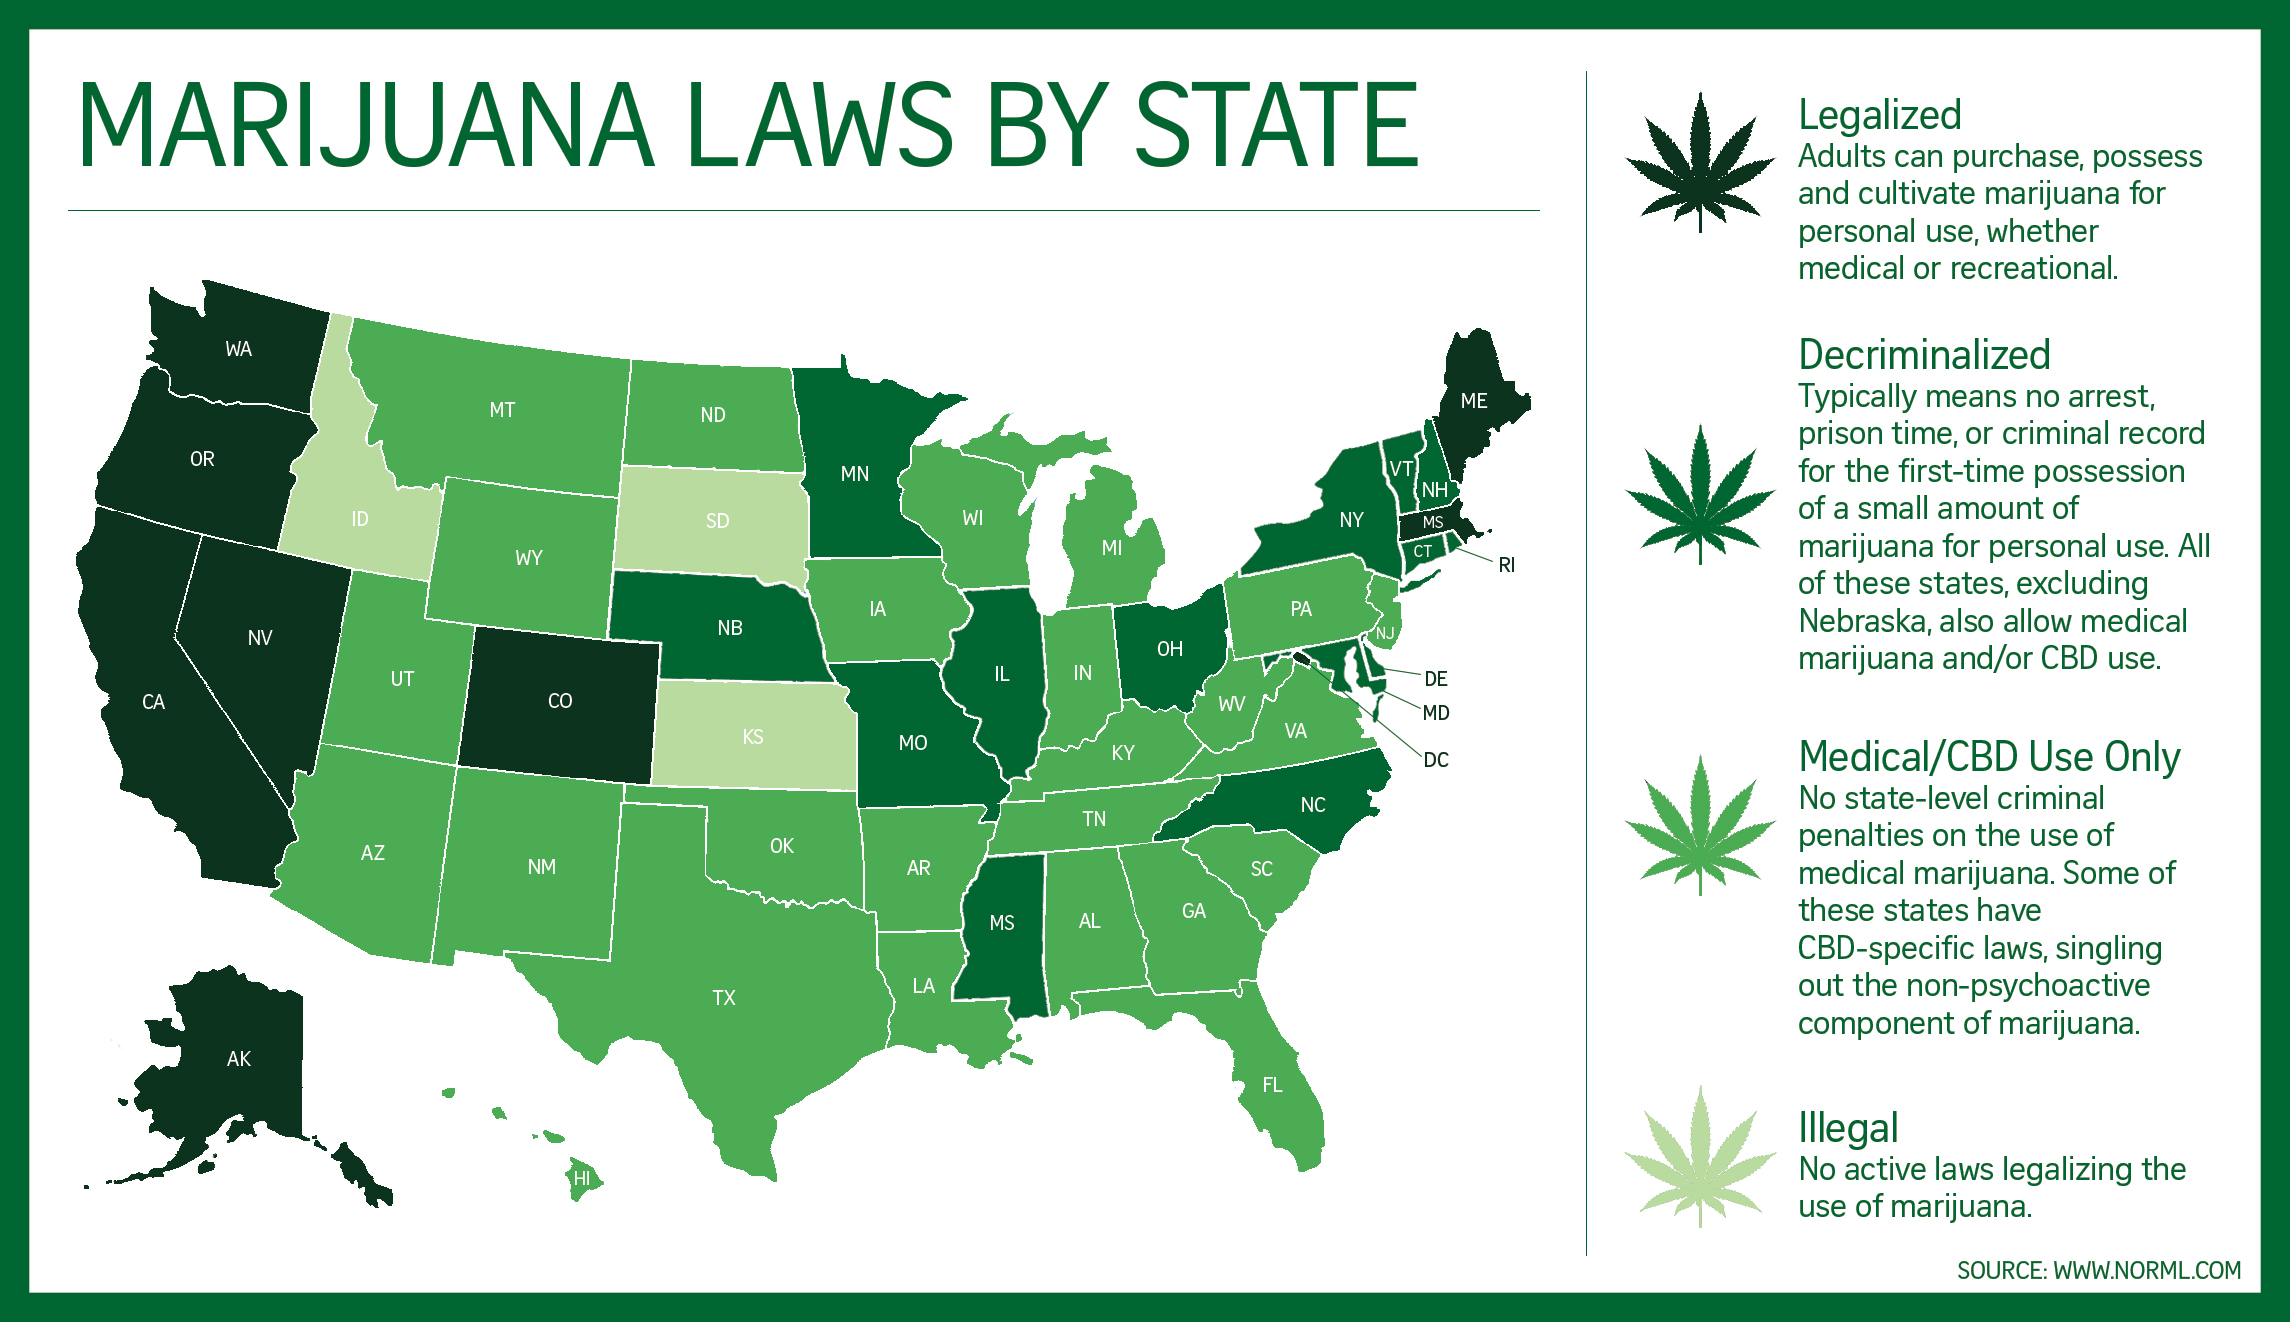 the legalization of marijuana for medicinal use Norml's mission is to move public opinion sufficiently to legalize the responsible use of marijuana by adults marijuana legalization laws correlated with reduced.